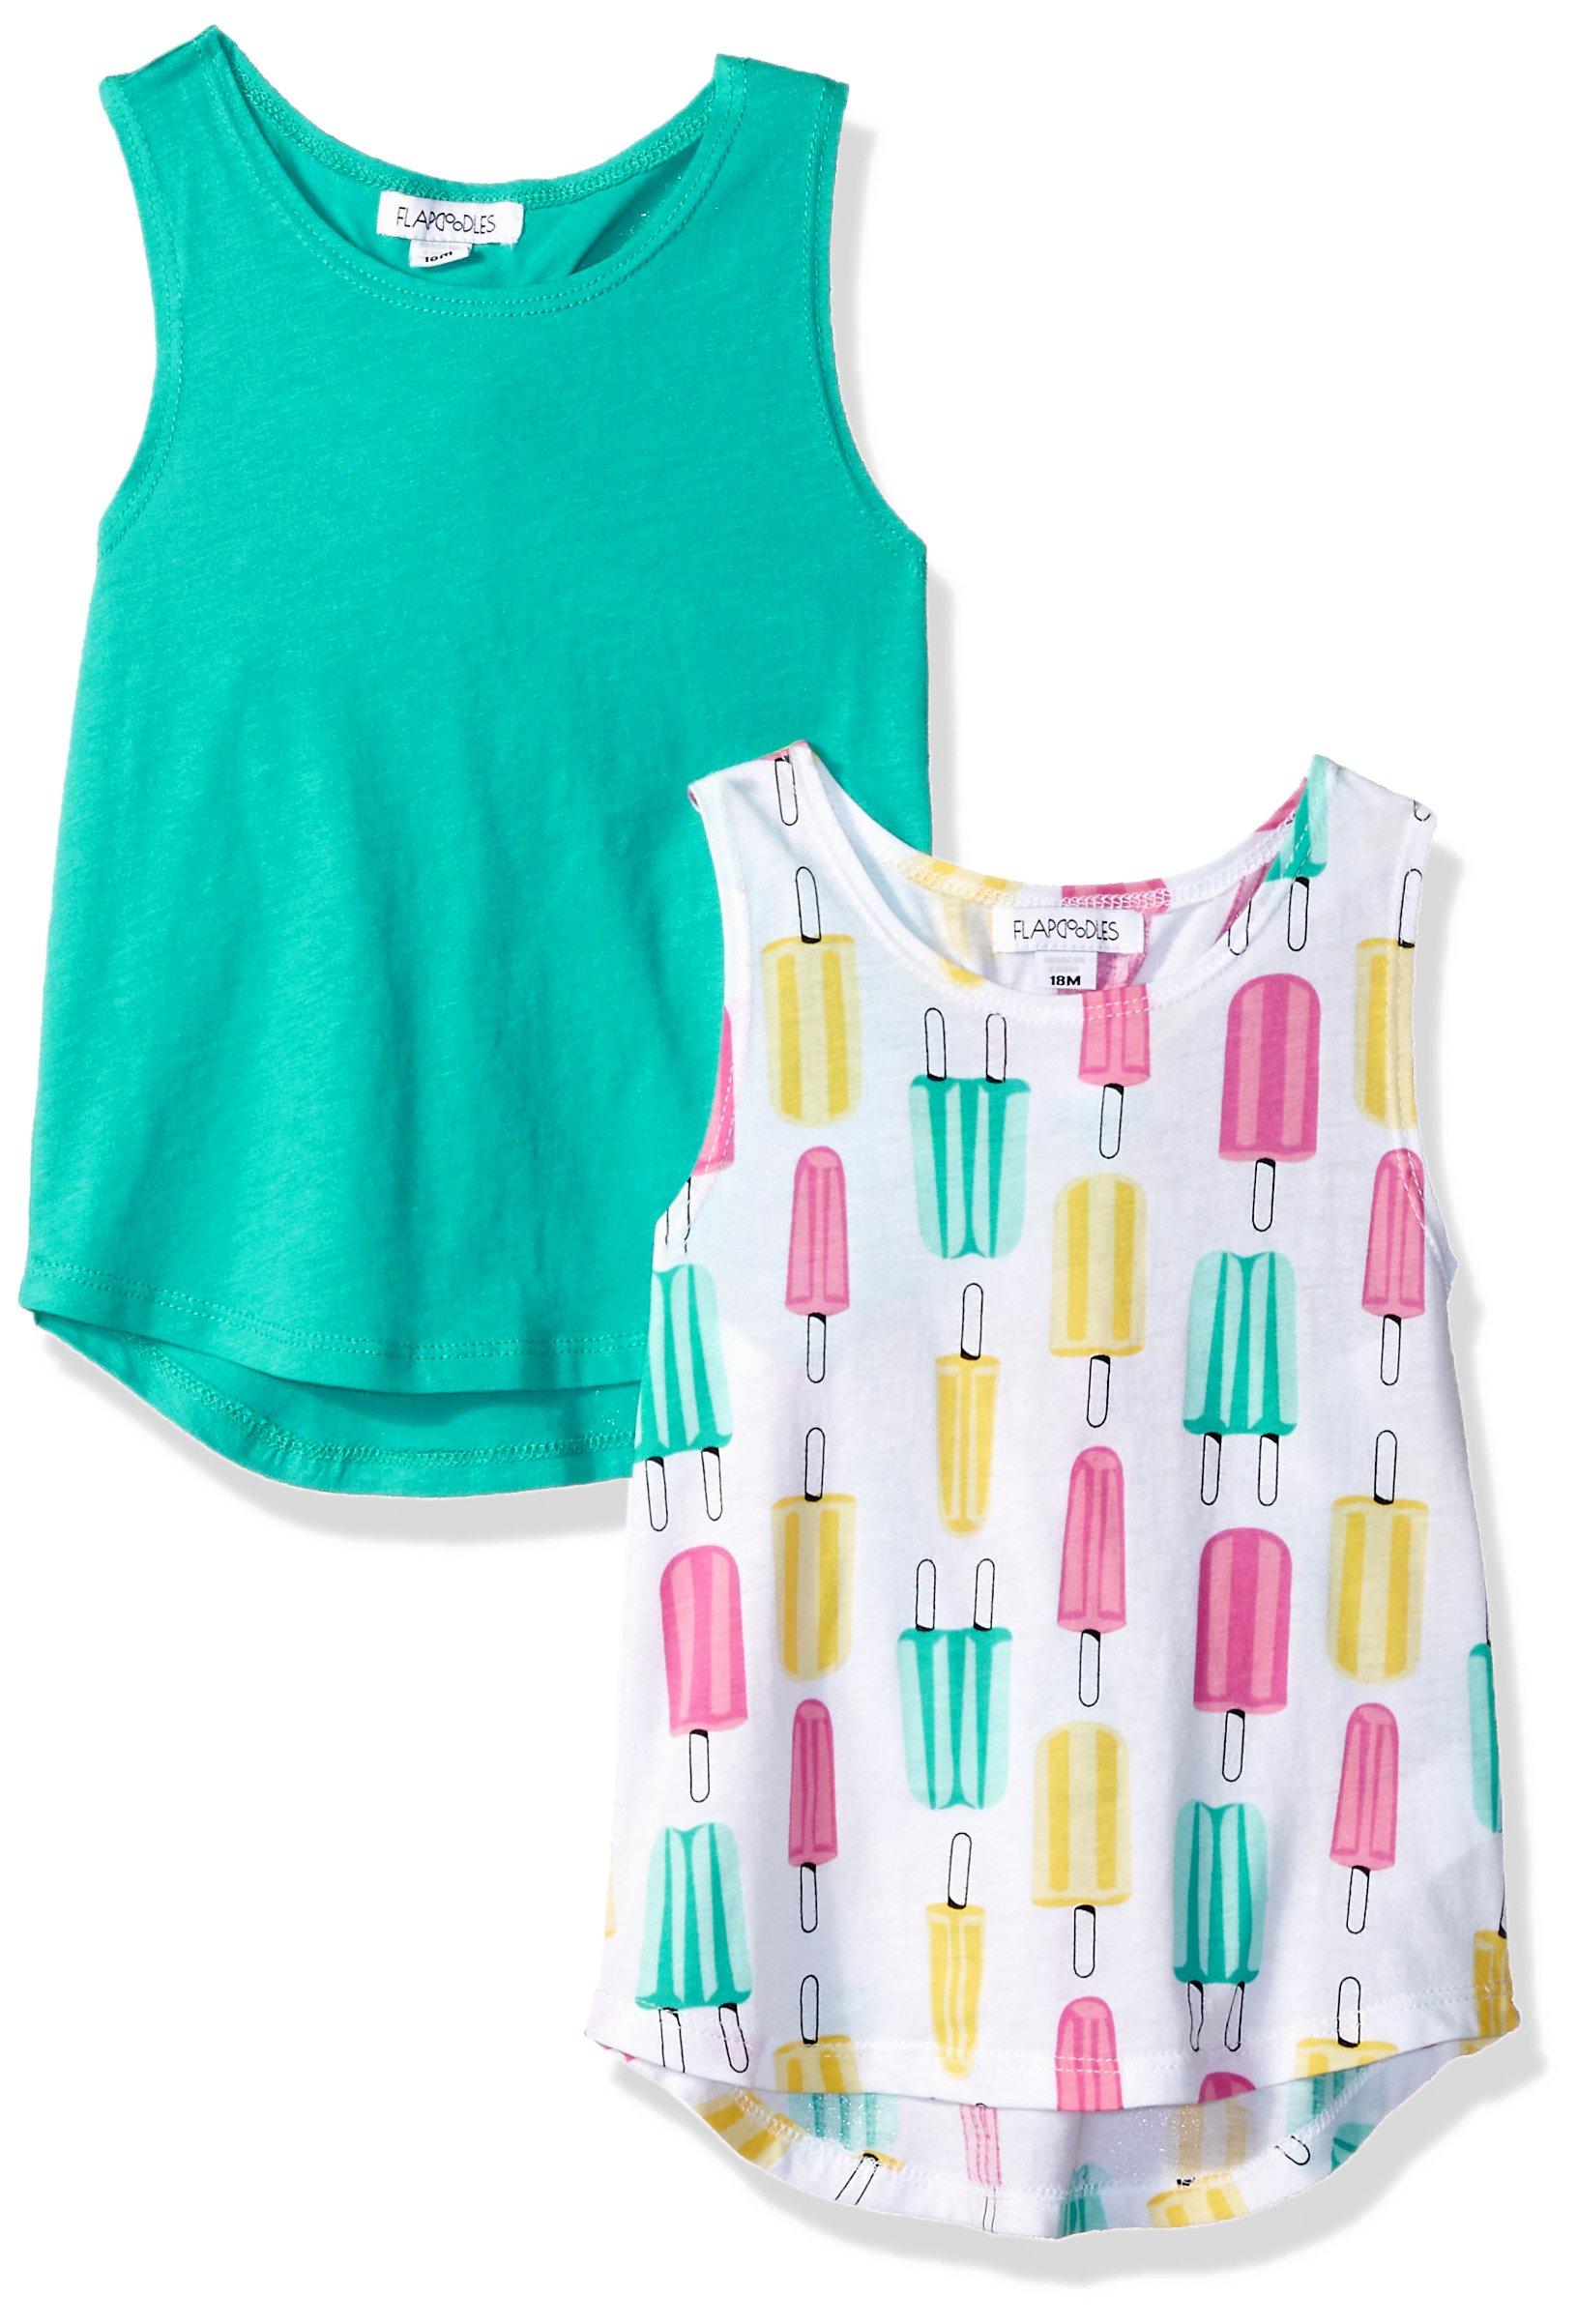 Flapdoodles Baby 2 Pack Girls Top Set with